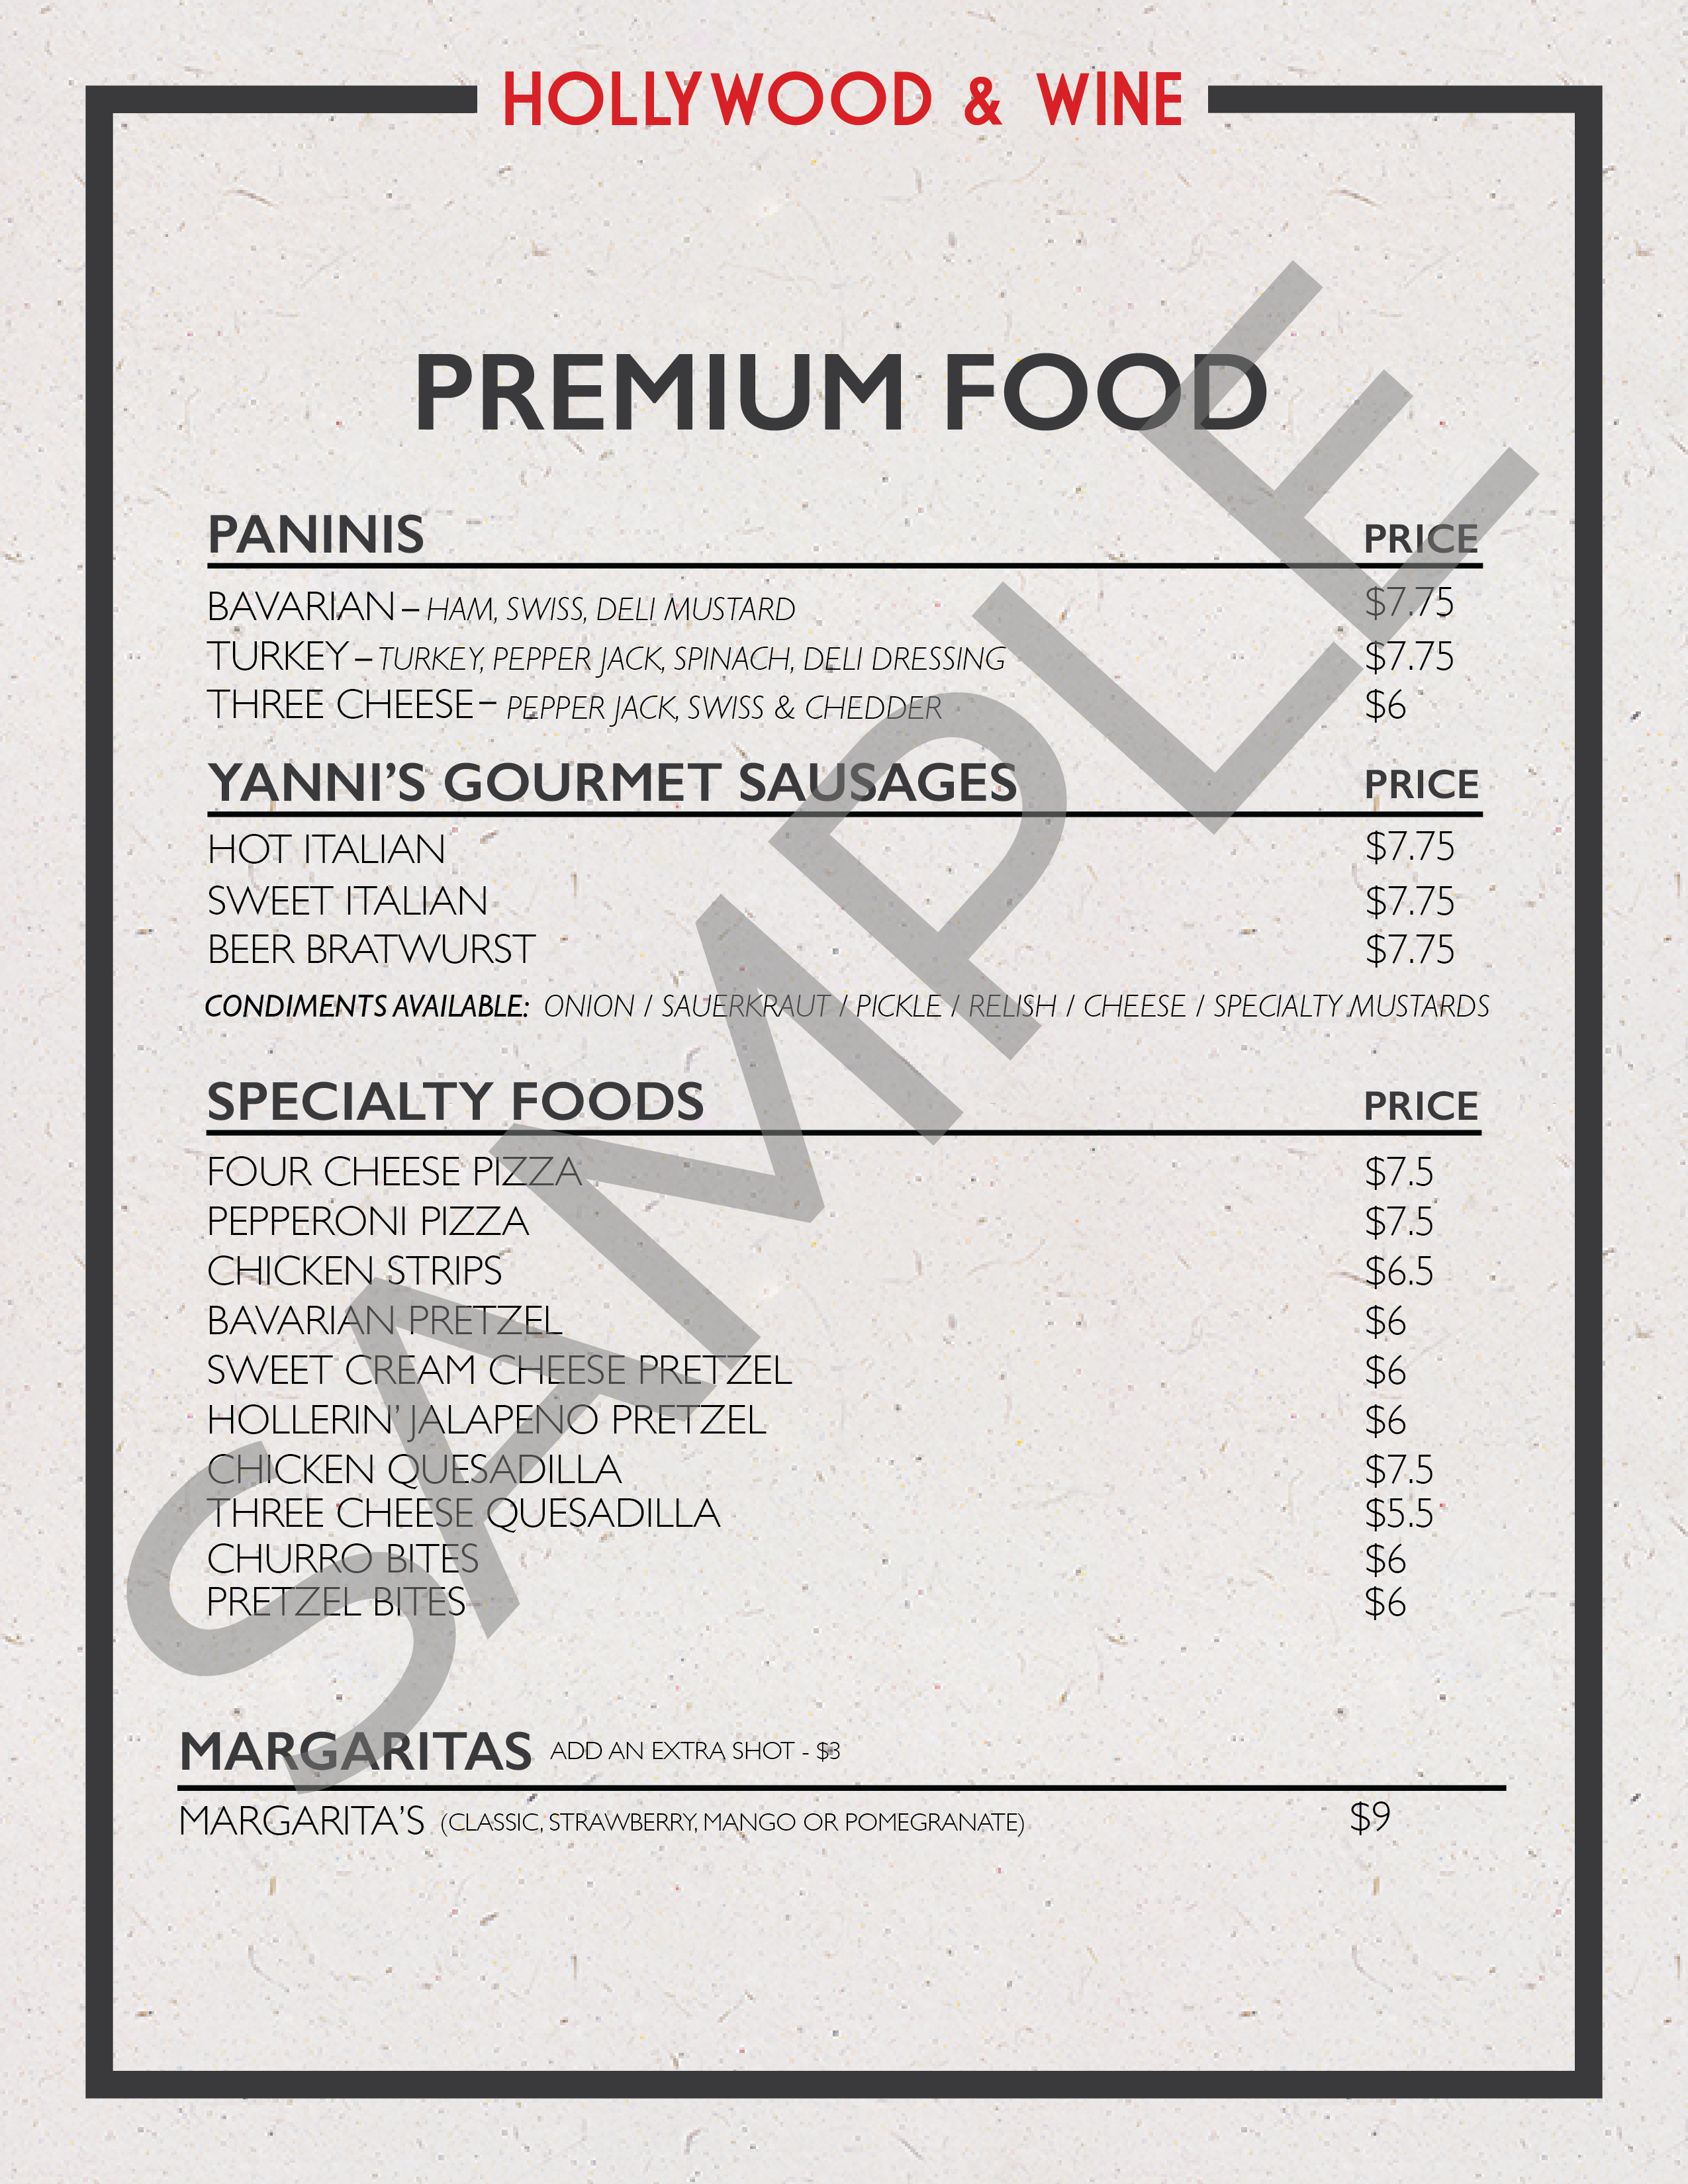 Premium Food Menu Sample Image